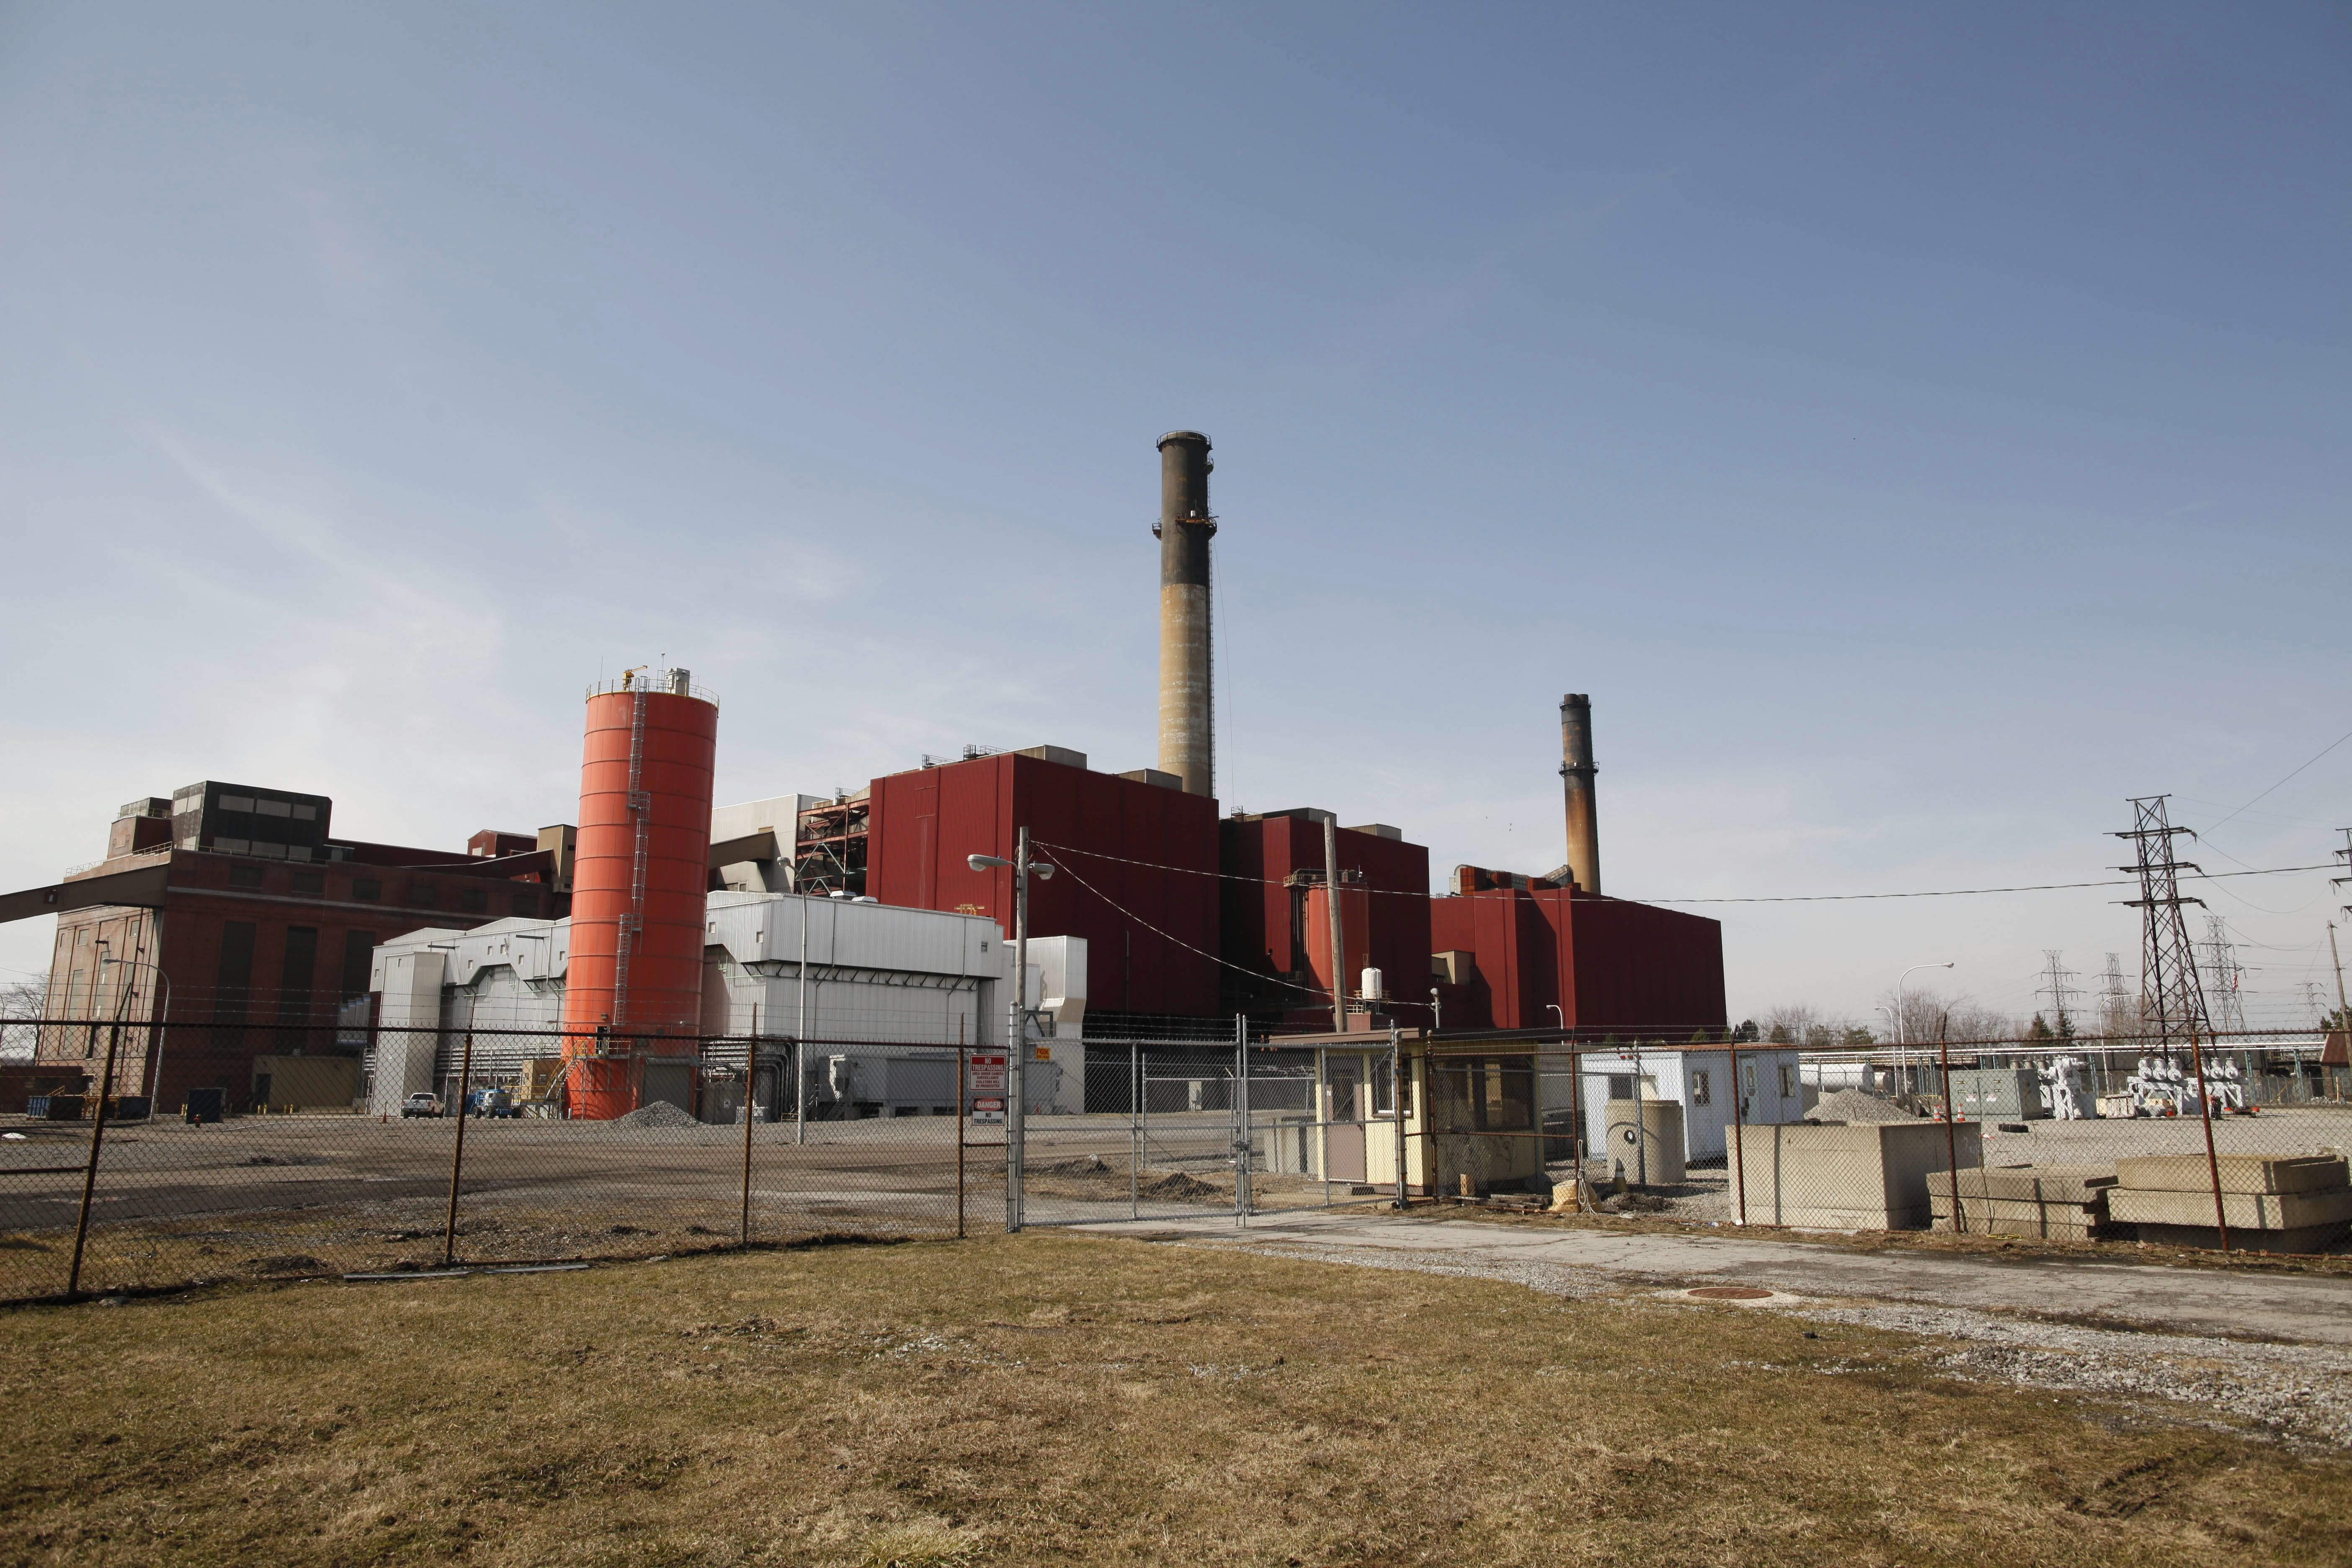 The closing of the Huntley Generating Station in the Town of Tonawanda will result in the loss of $6 million in local tax revenues, including a $3 million loss to the Kenmore-Tonawanda school district.